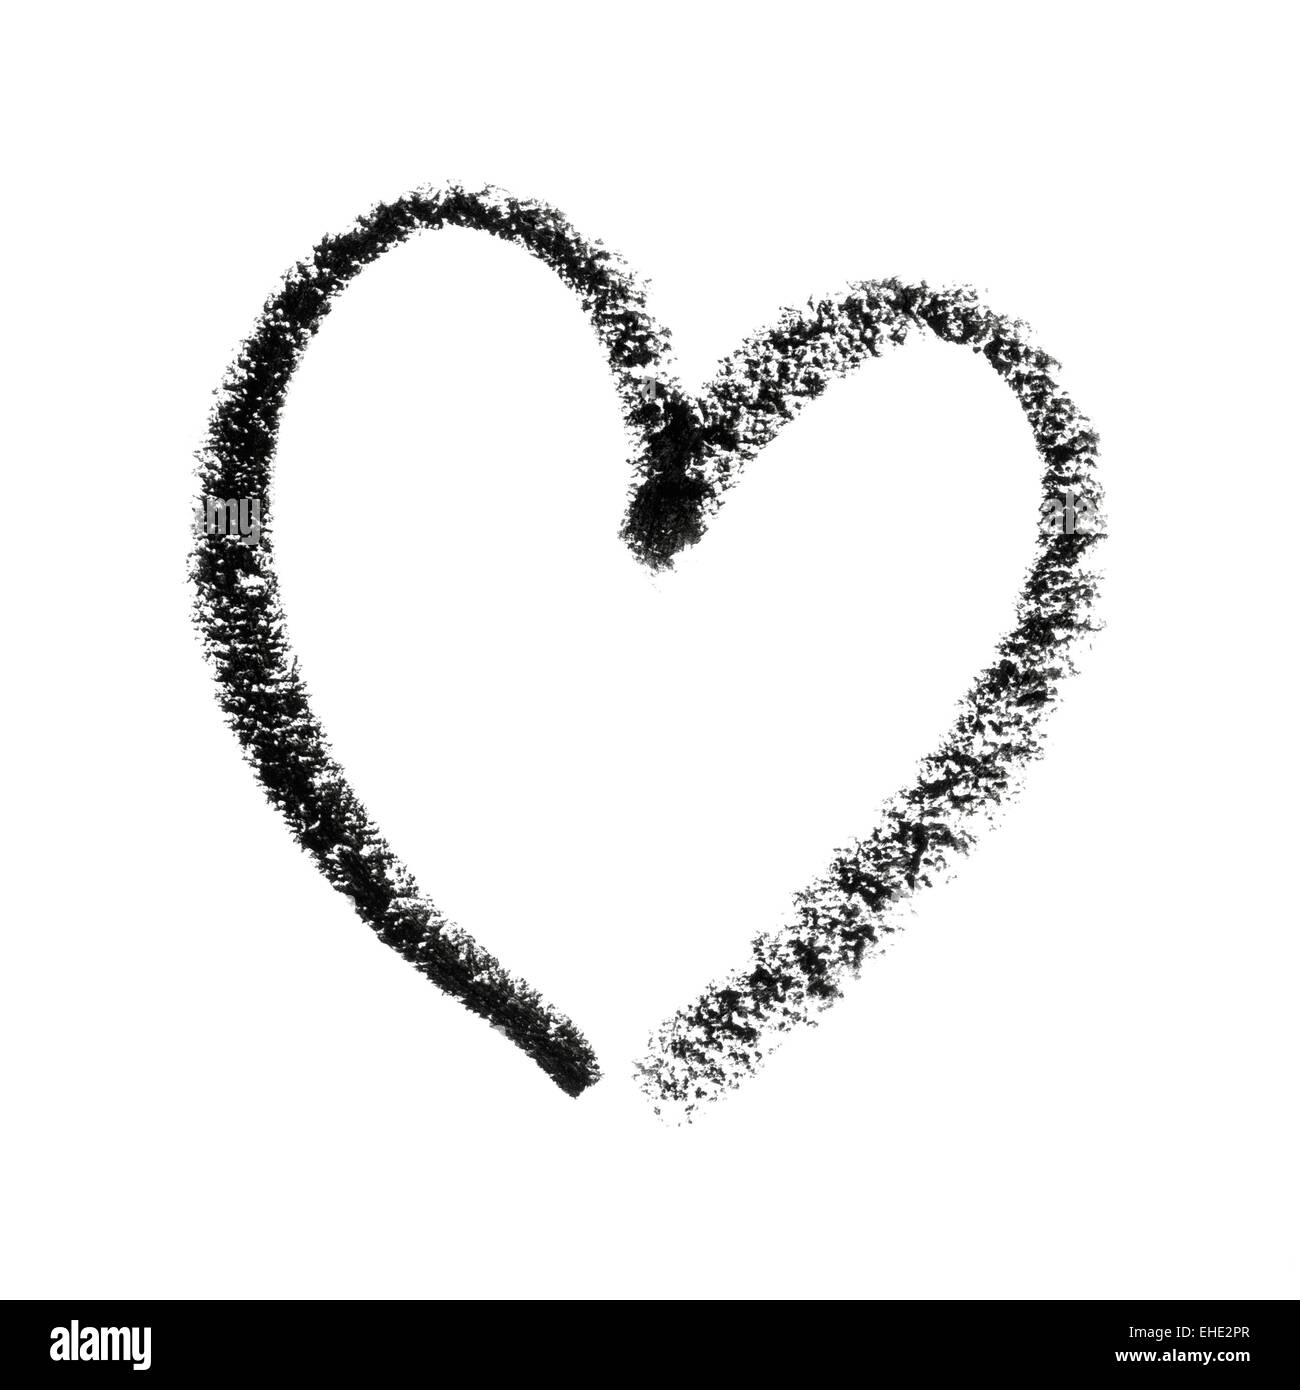 Painted heart symbol outline stock photo 79600159 alamy painted heart symbol outline buycottarizona Image collections